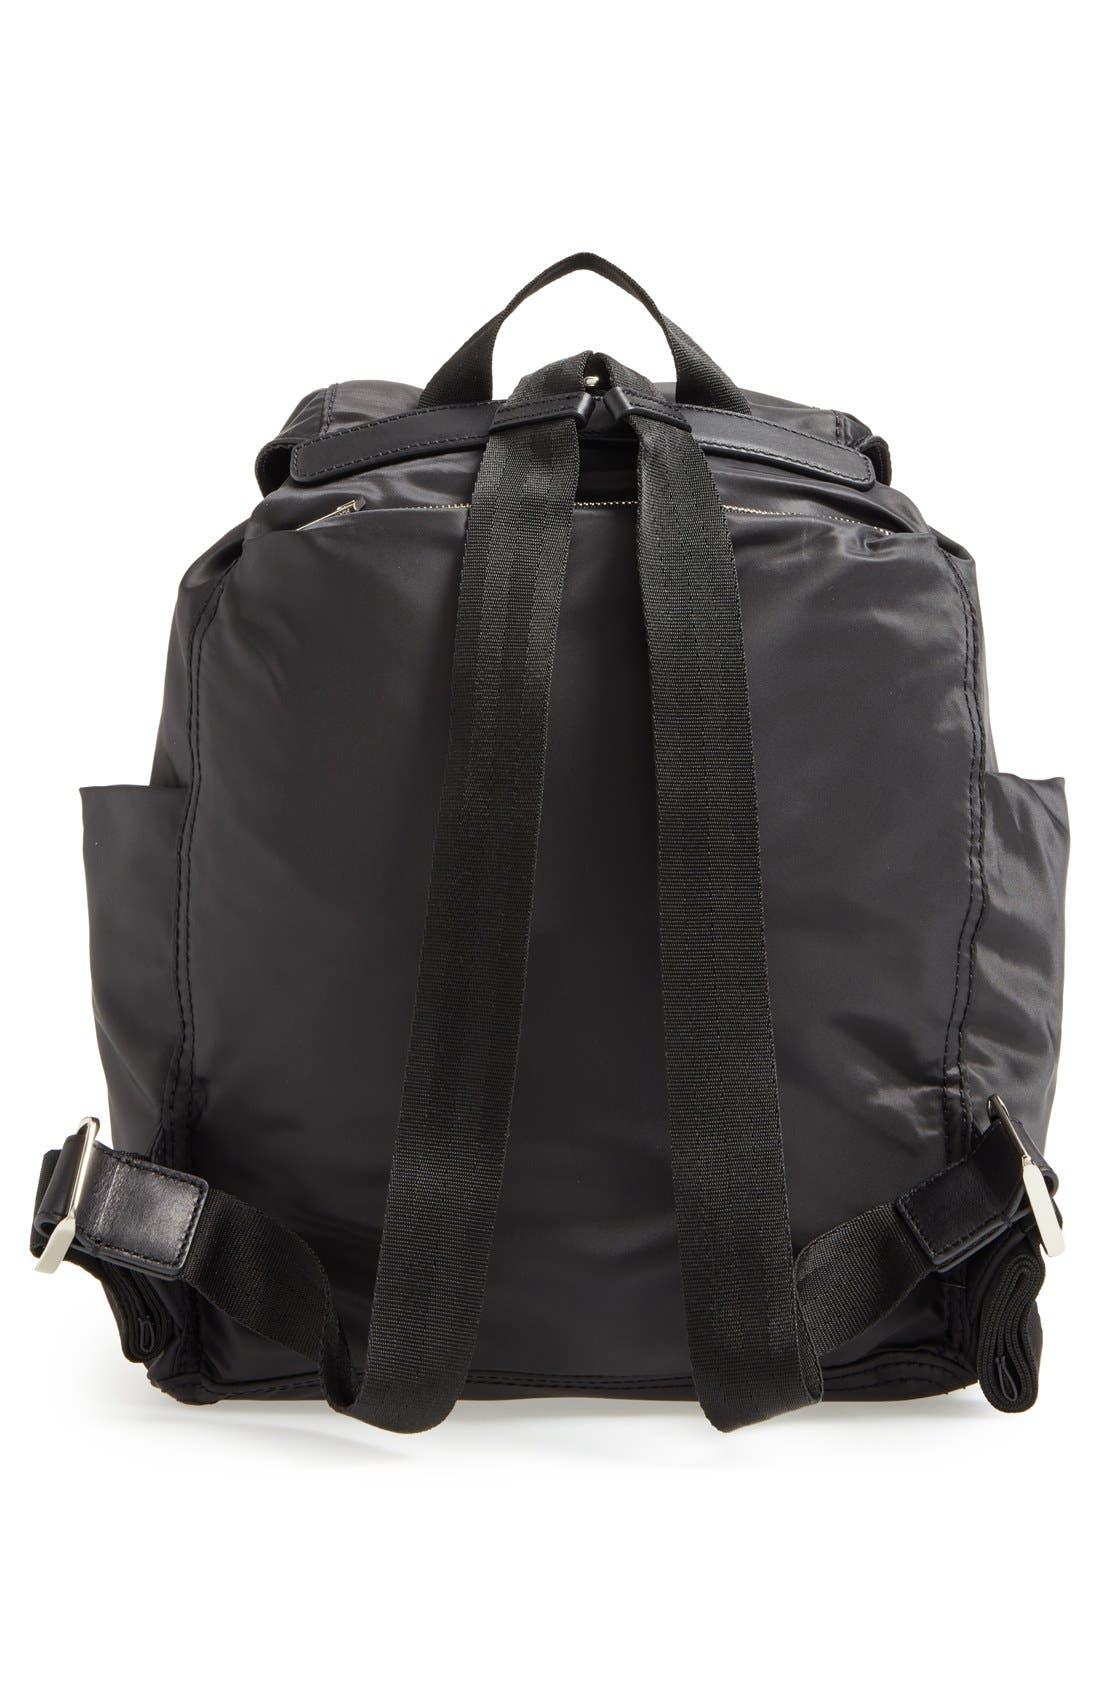 MARC JACOBS,                             'Easy' Backpack,                             Alternate thumbnail 2, color,                             001